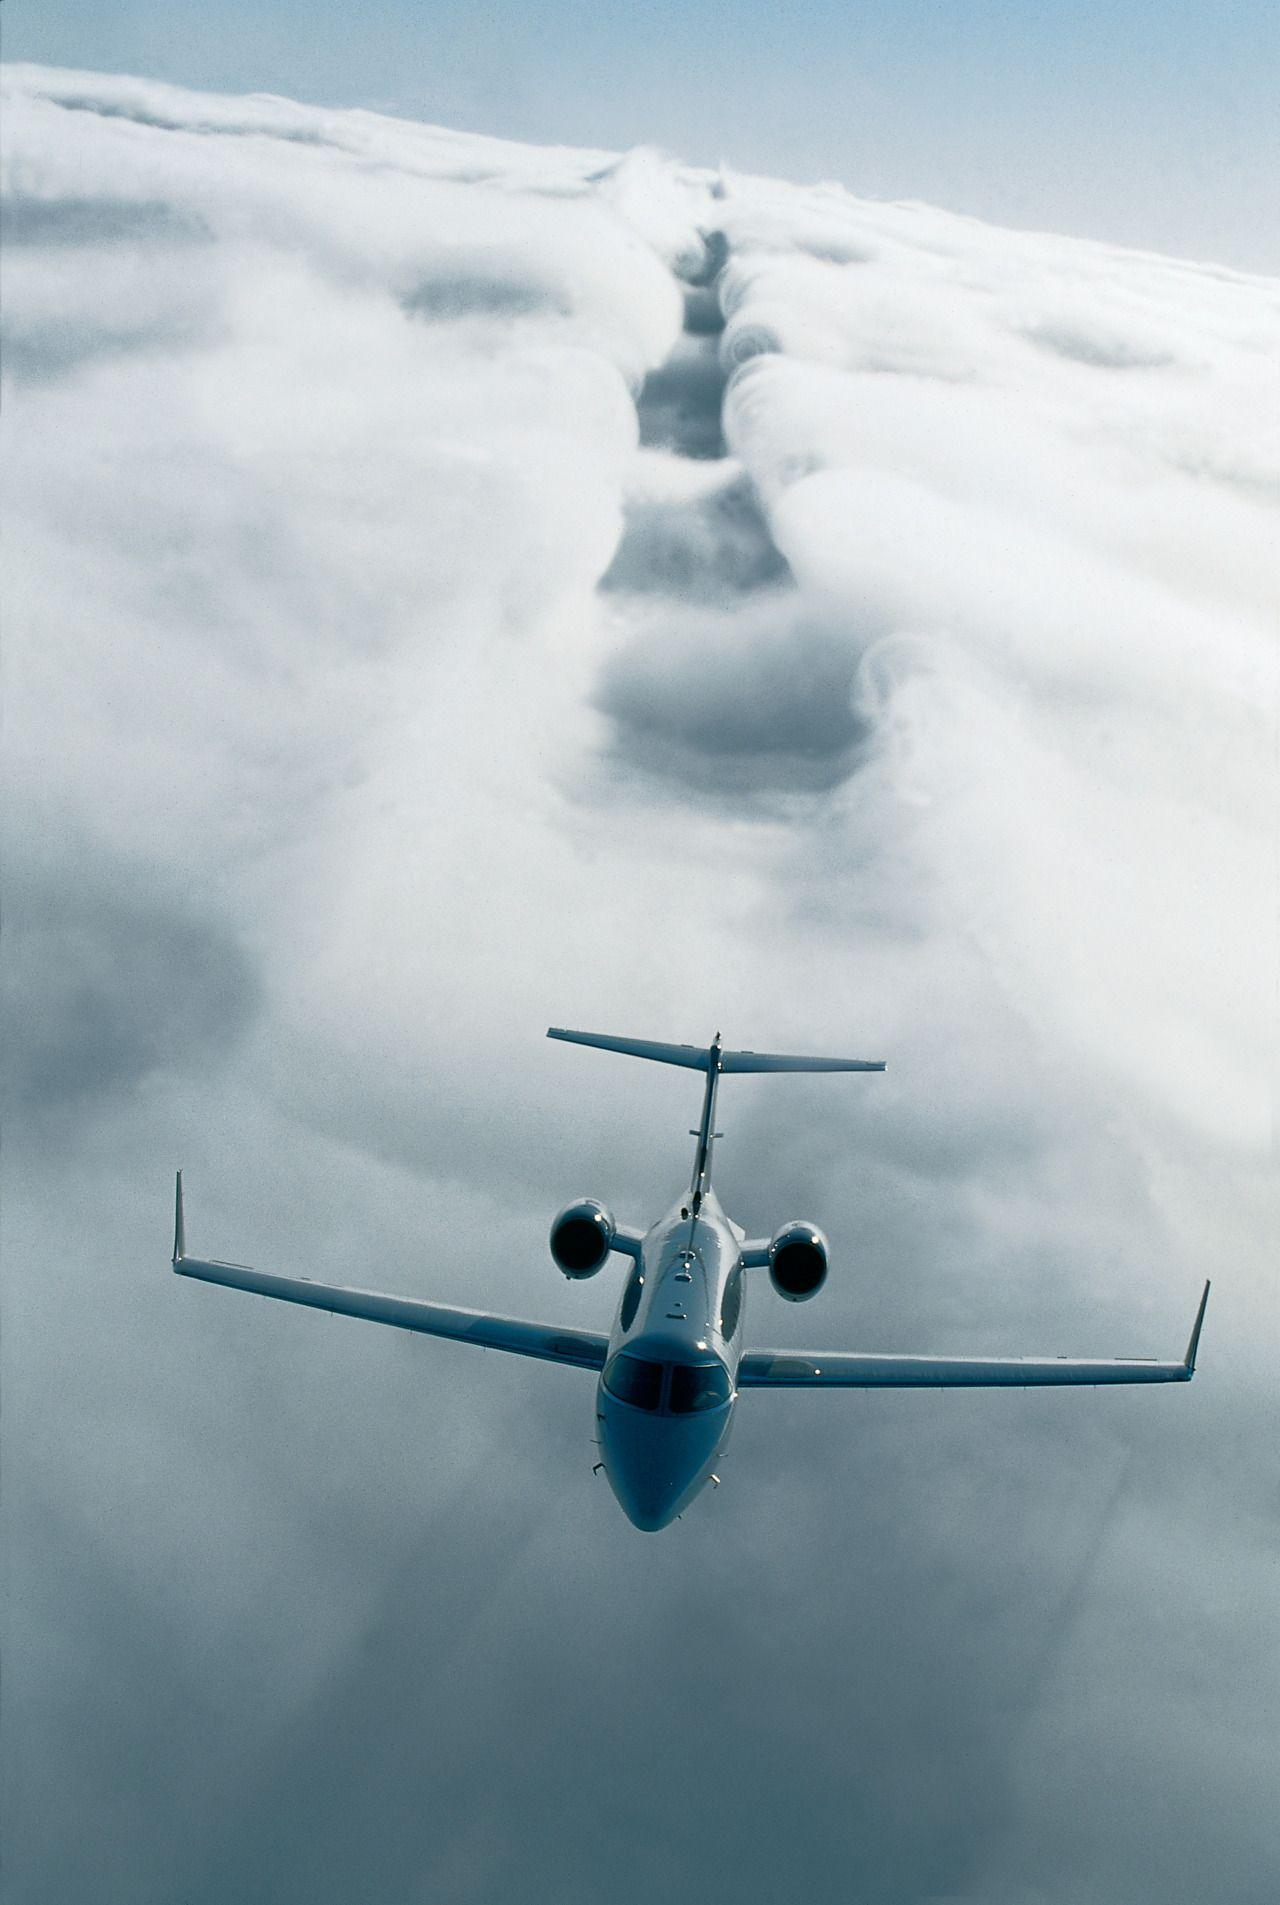 Us 129 Crashes: Private Jet Wallpapers